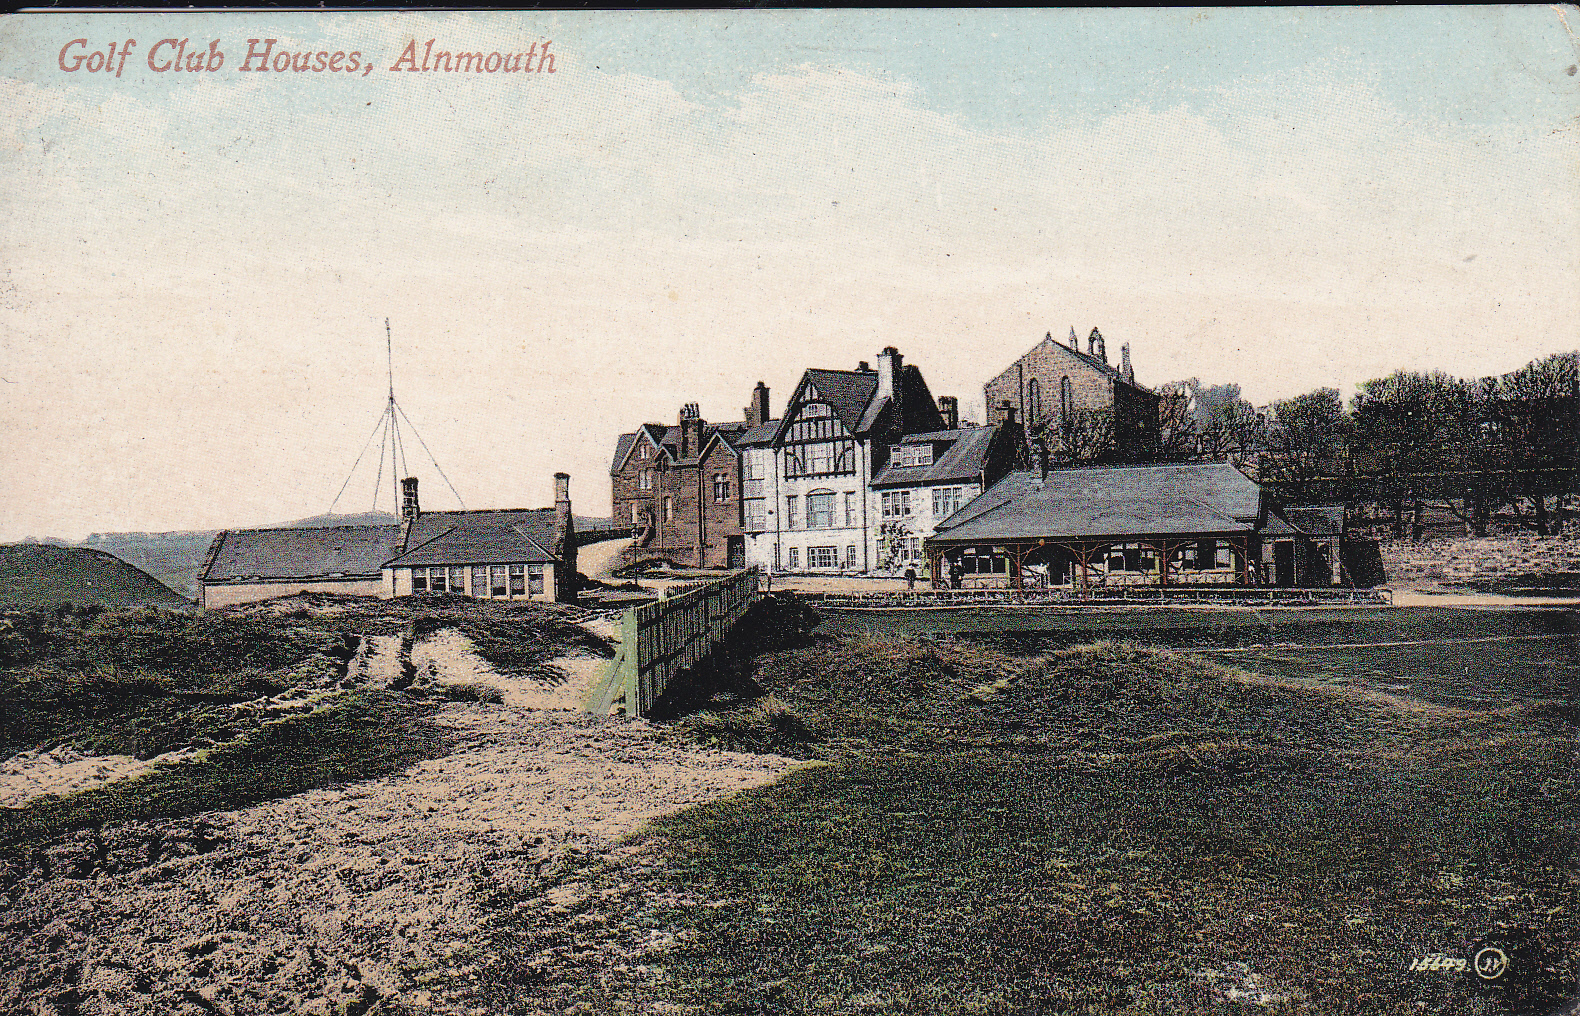 Alnmouth Village Club